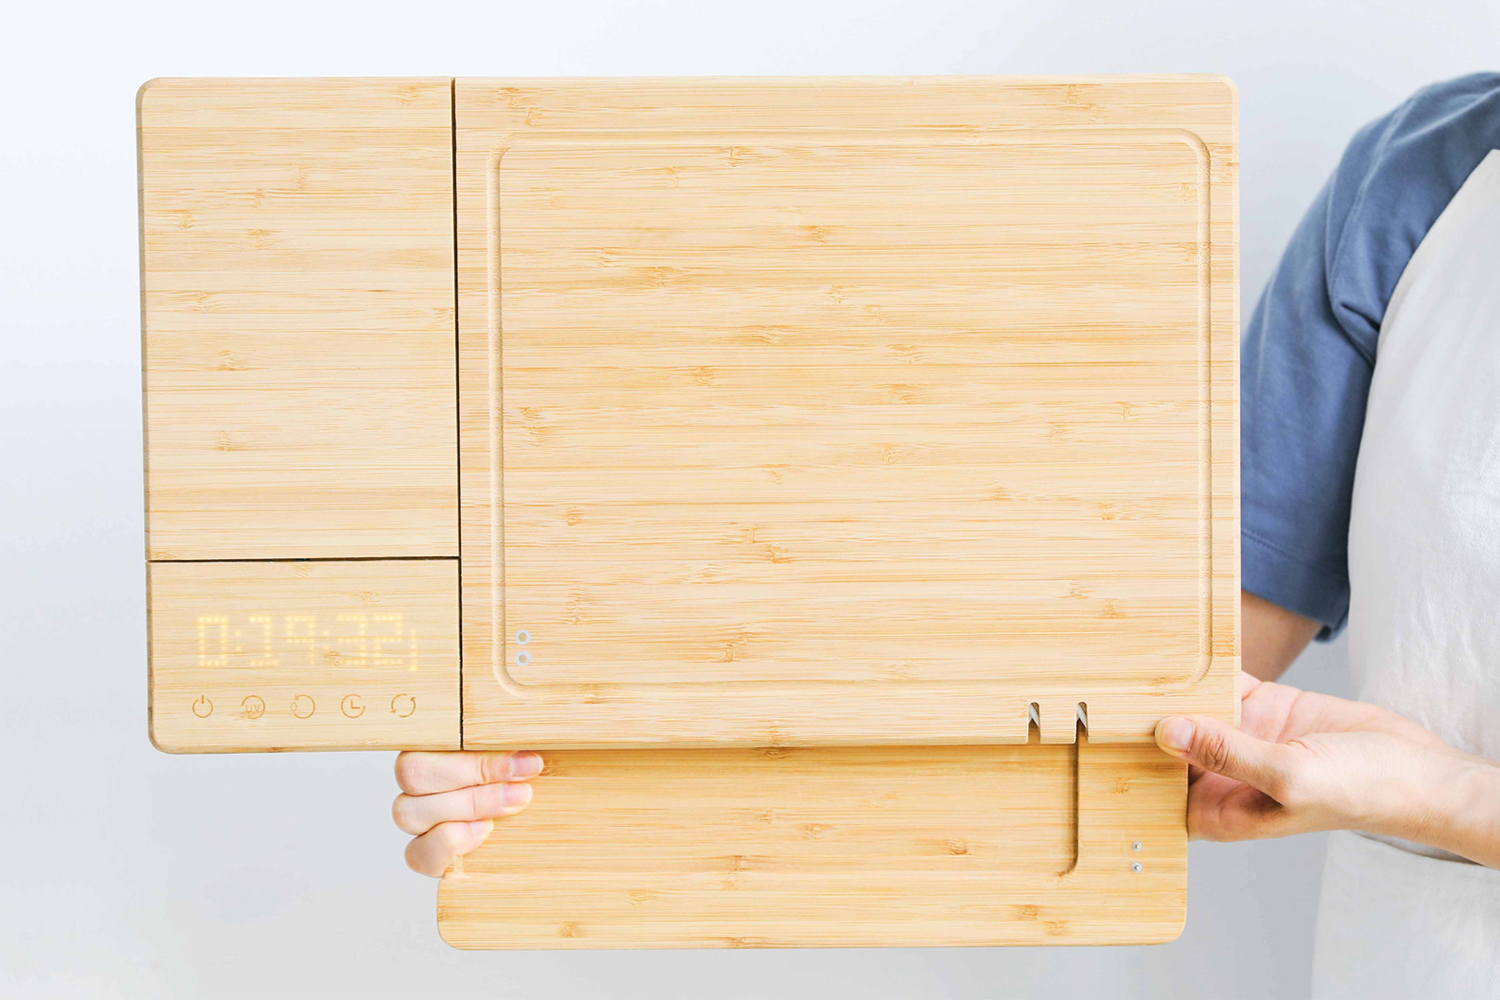 ChopBox Cutting Board Kickstarter